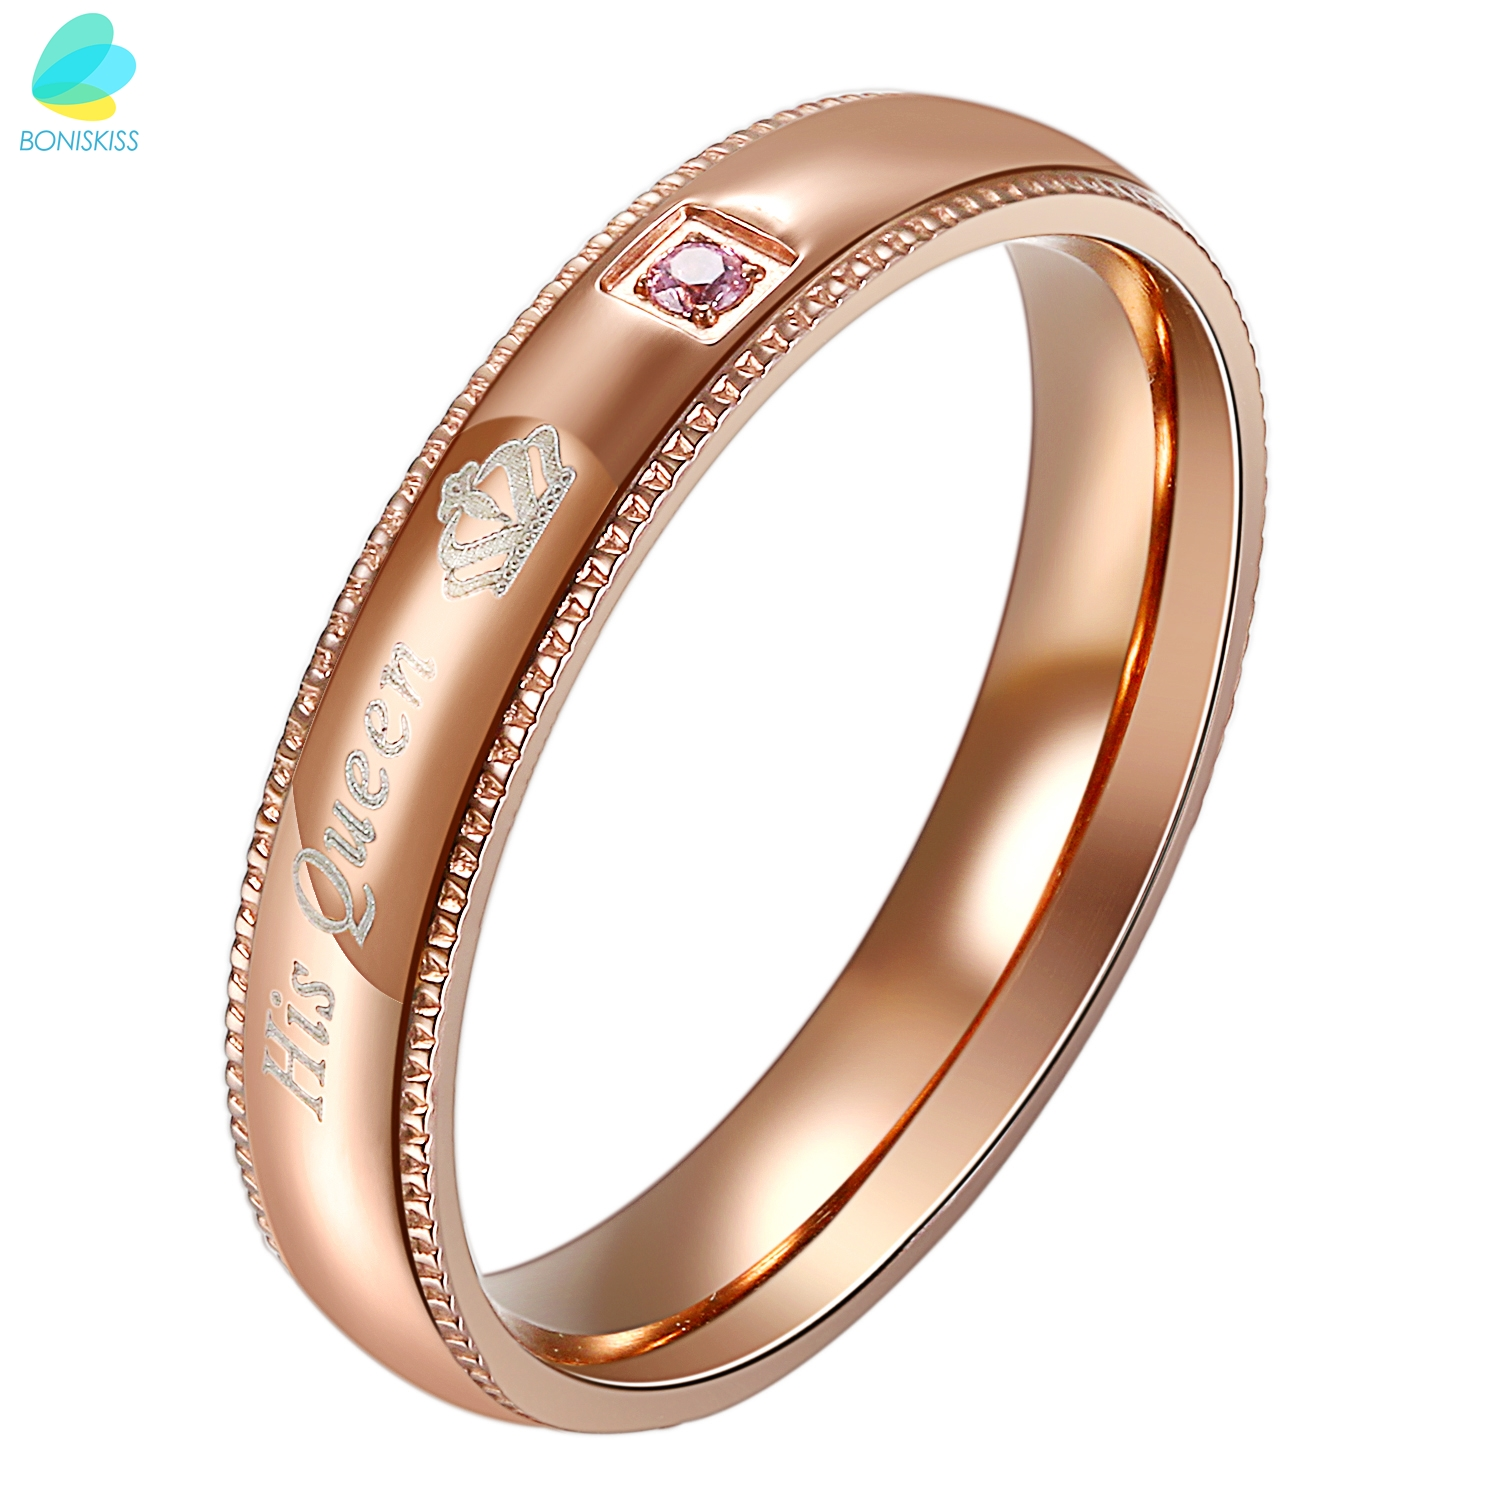 rings no her masculino king men engagement bands his promise item women wedding queen for stainless us fate and steel love ring anel